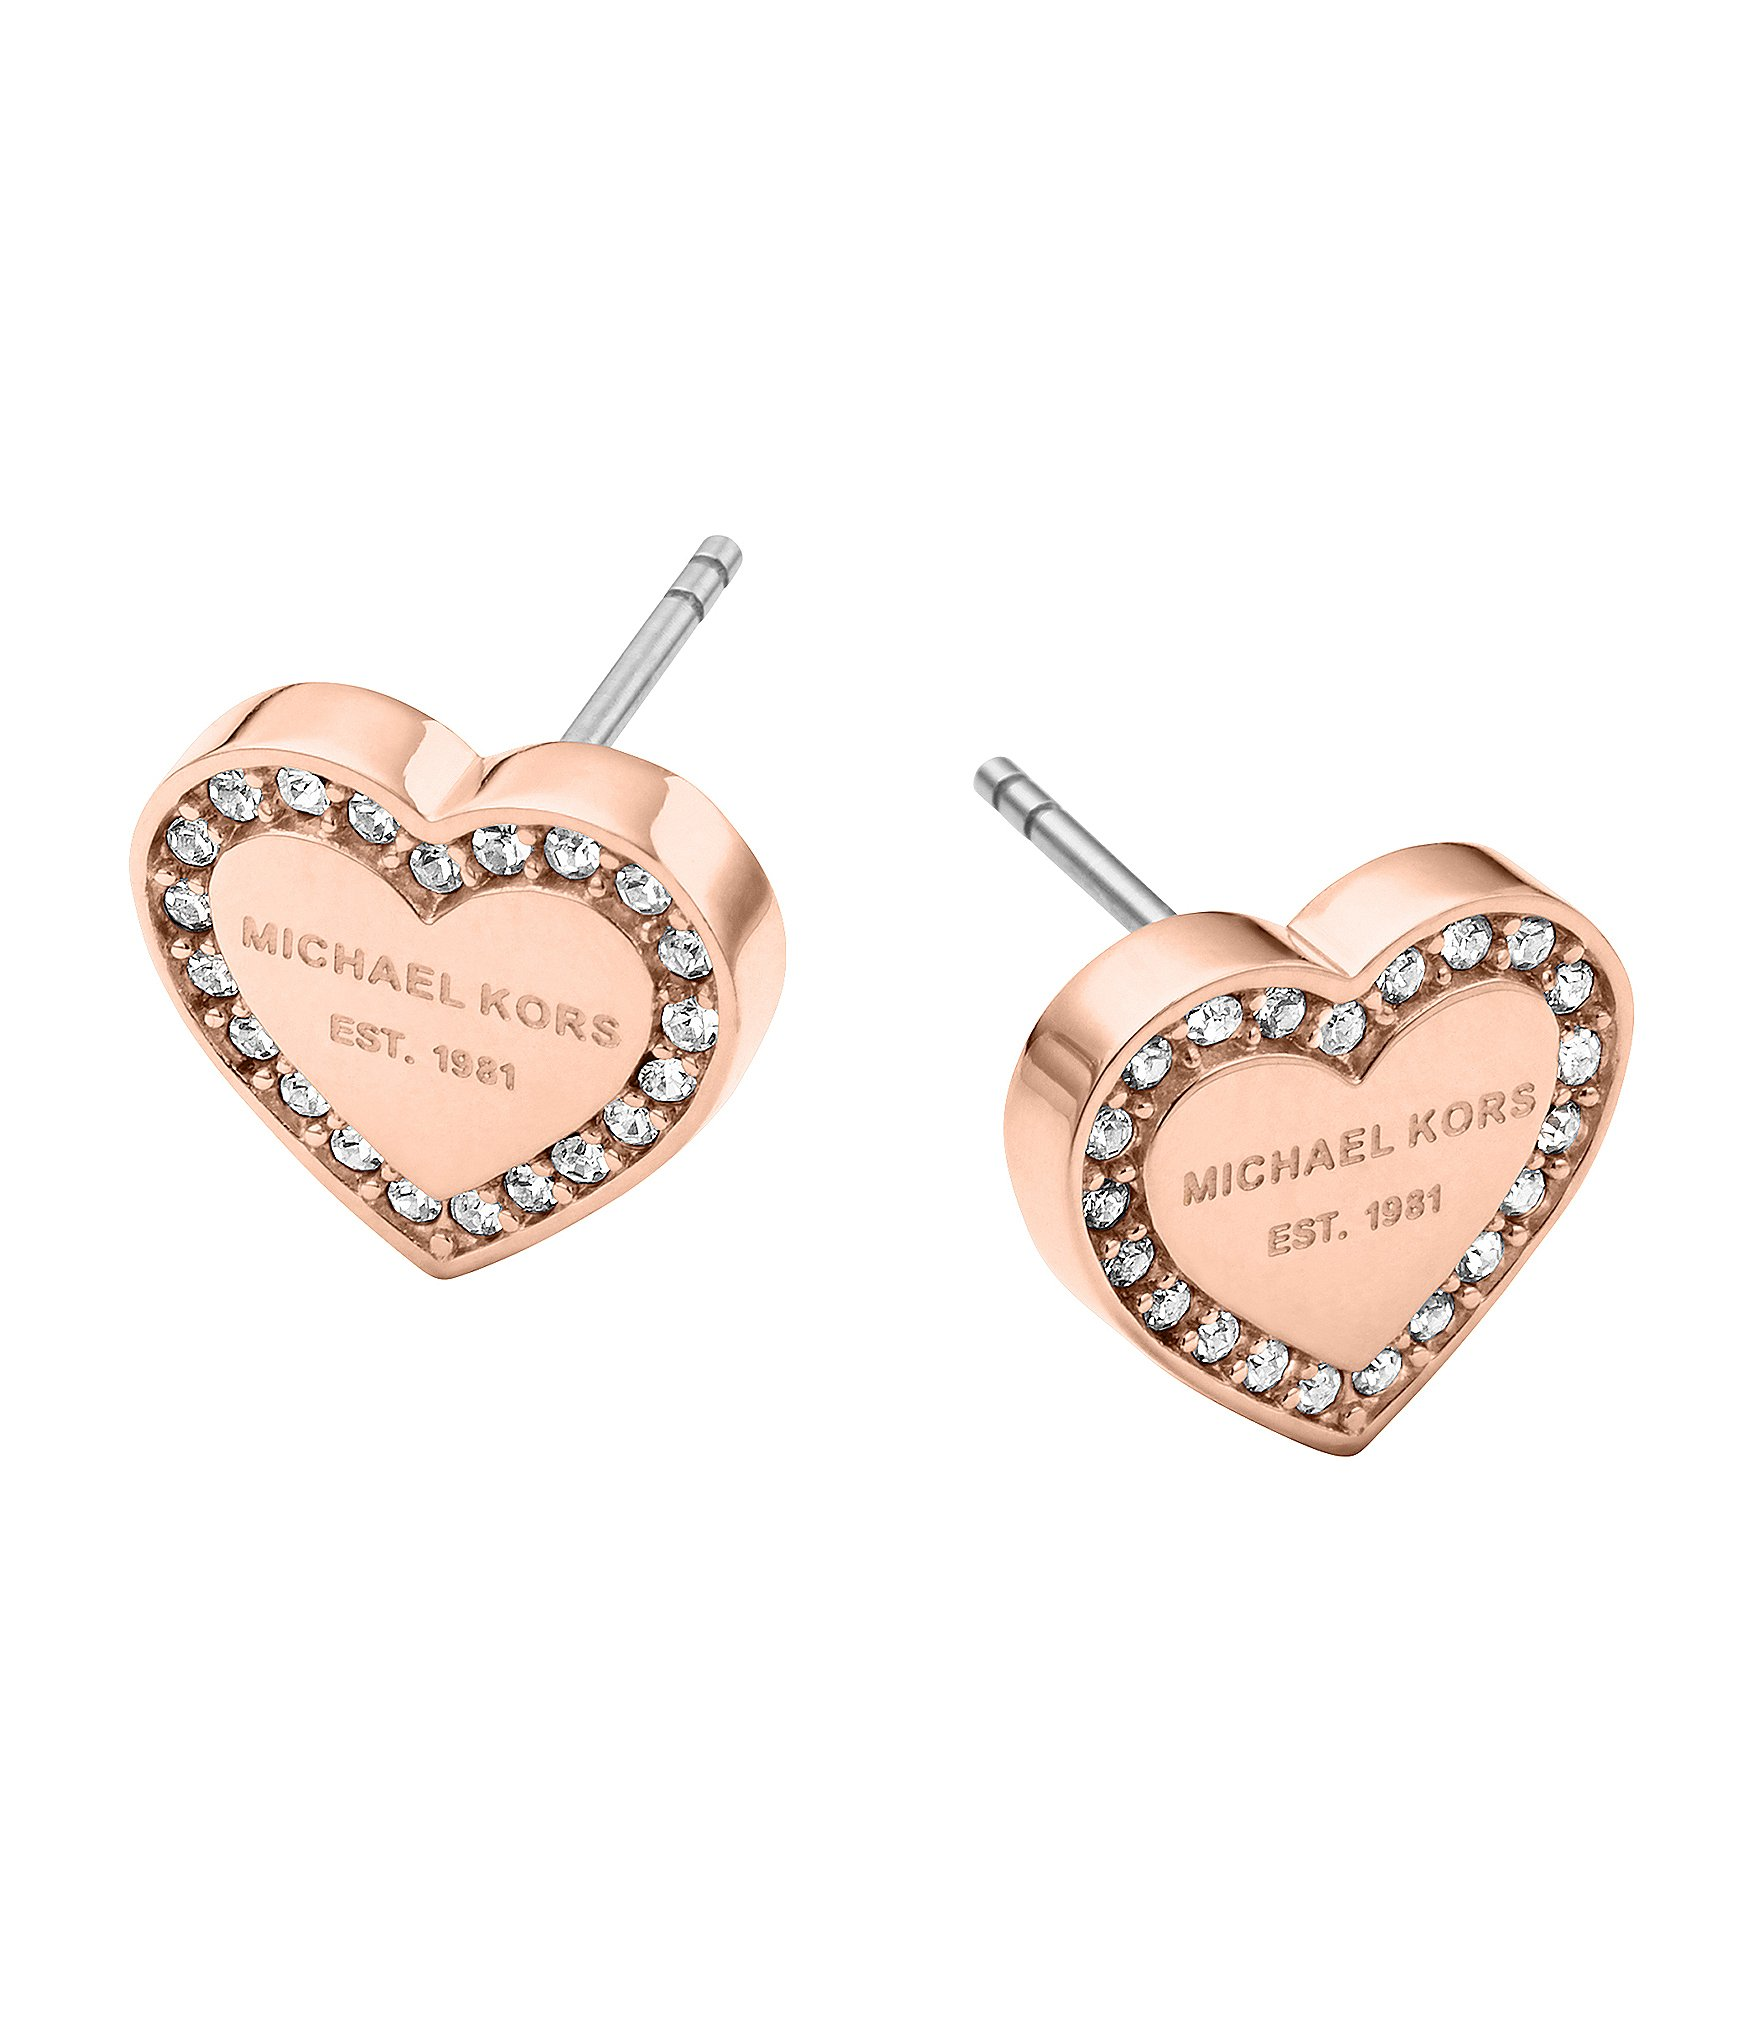 Michael Kors Earrings Rose Gold